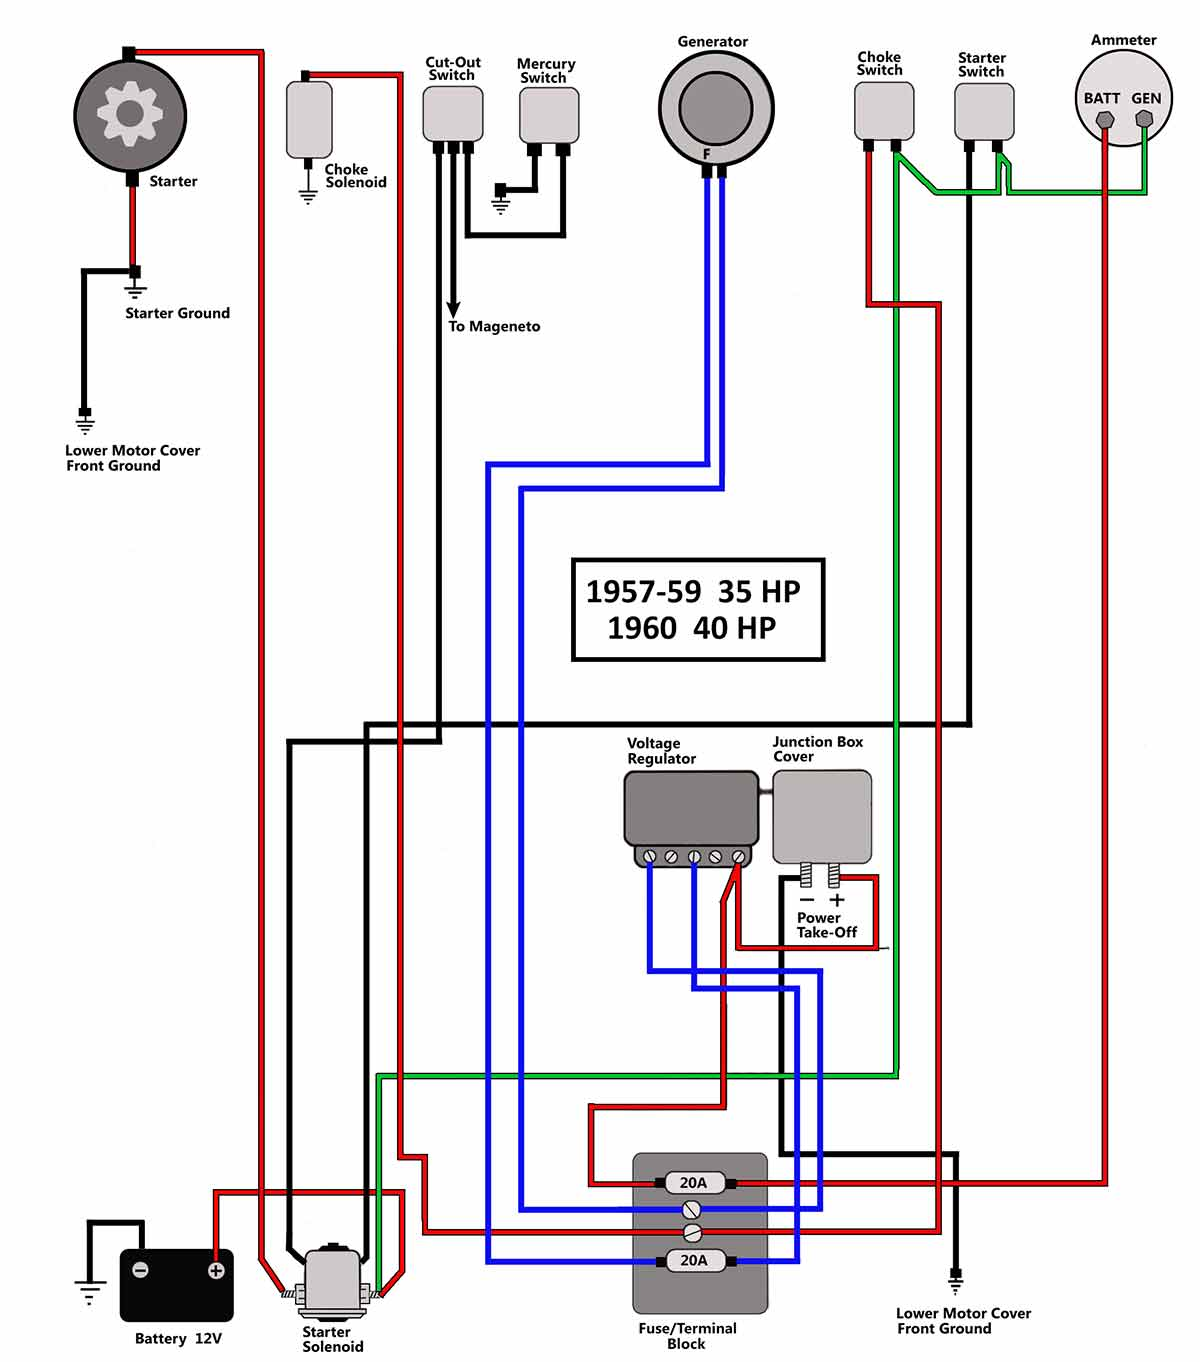 hight resolution of yamaha 40 hp wiring diagram wiring diagram third level rh 3 18 11 jacobwinterstein com 1979 mercury 40 hp outboard wiring diagram mercury 40 hp outboard